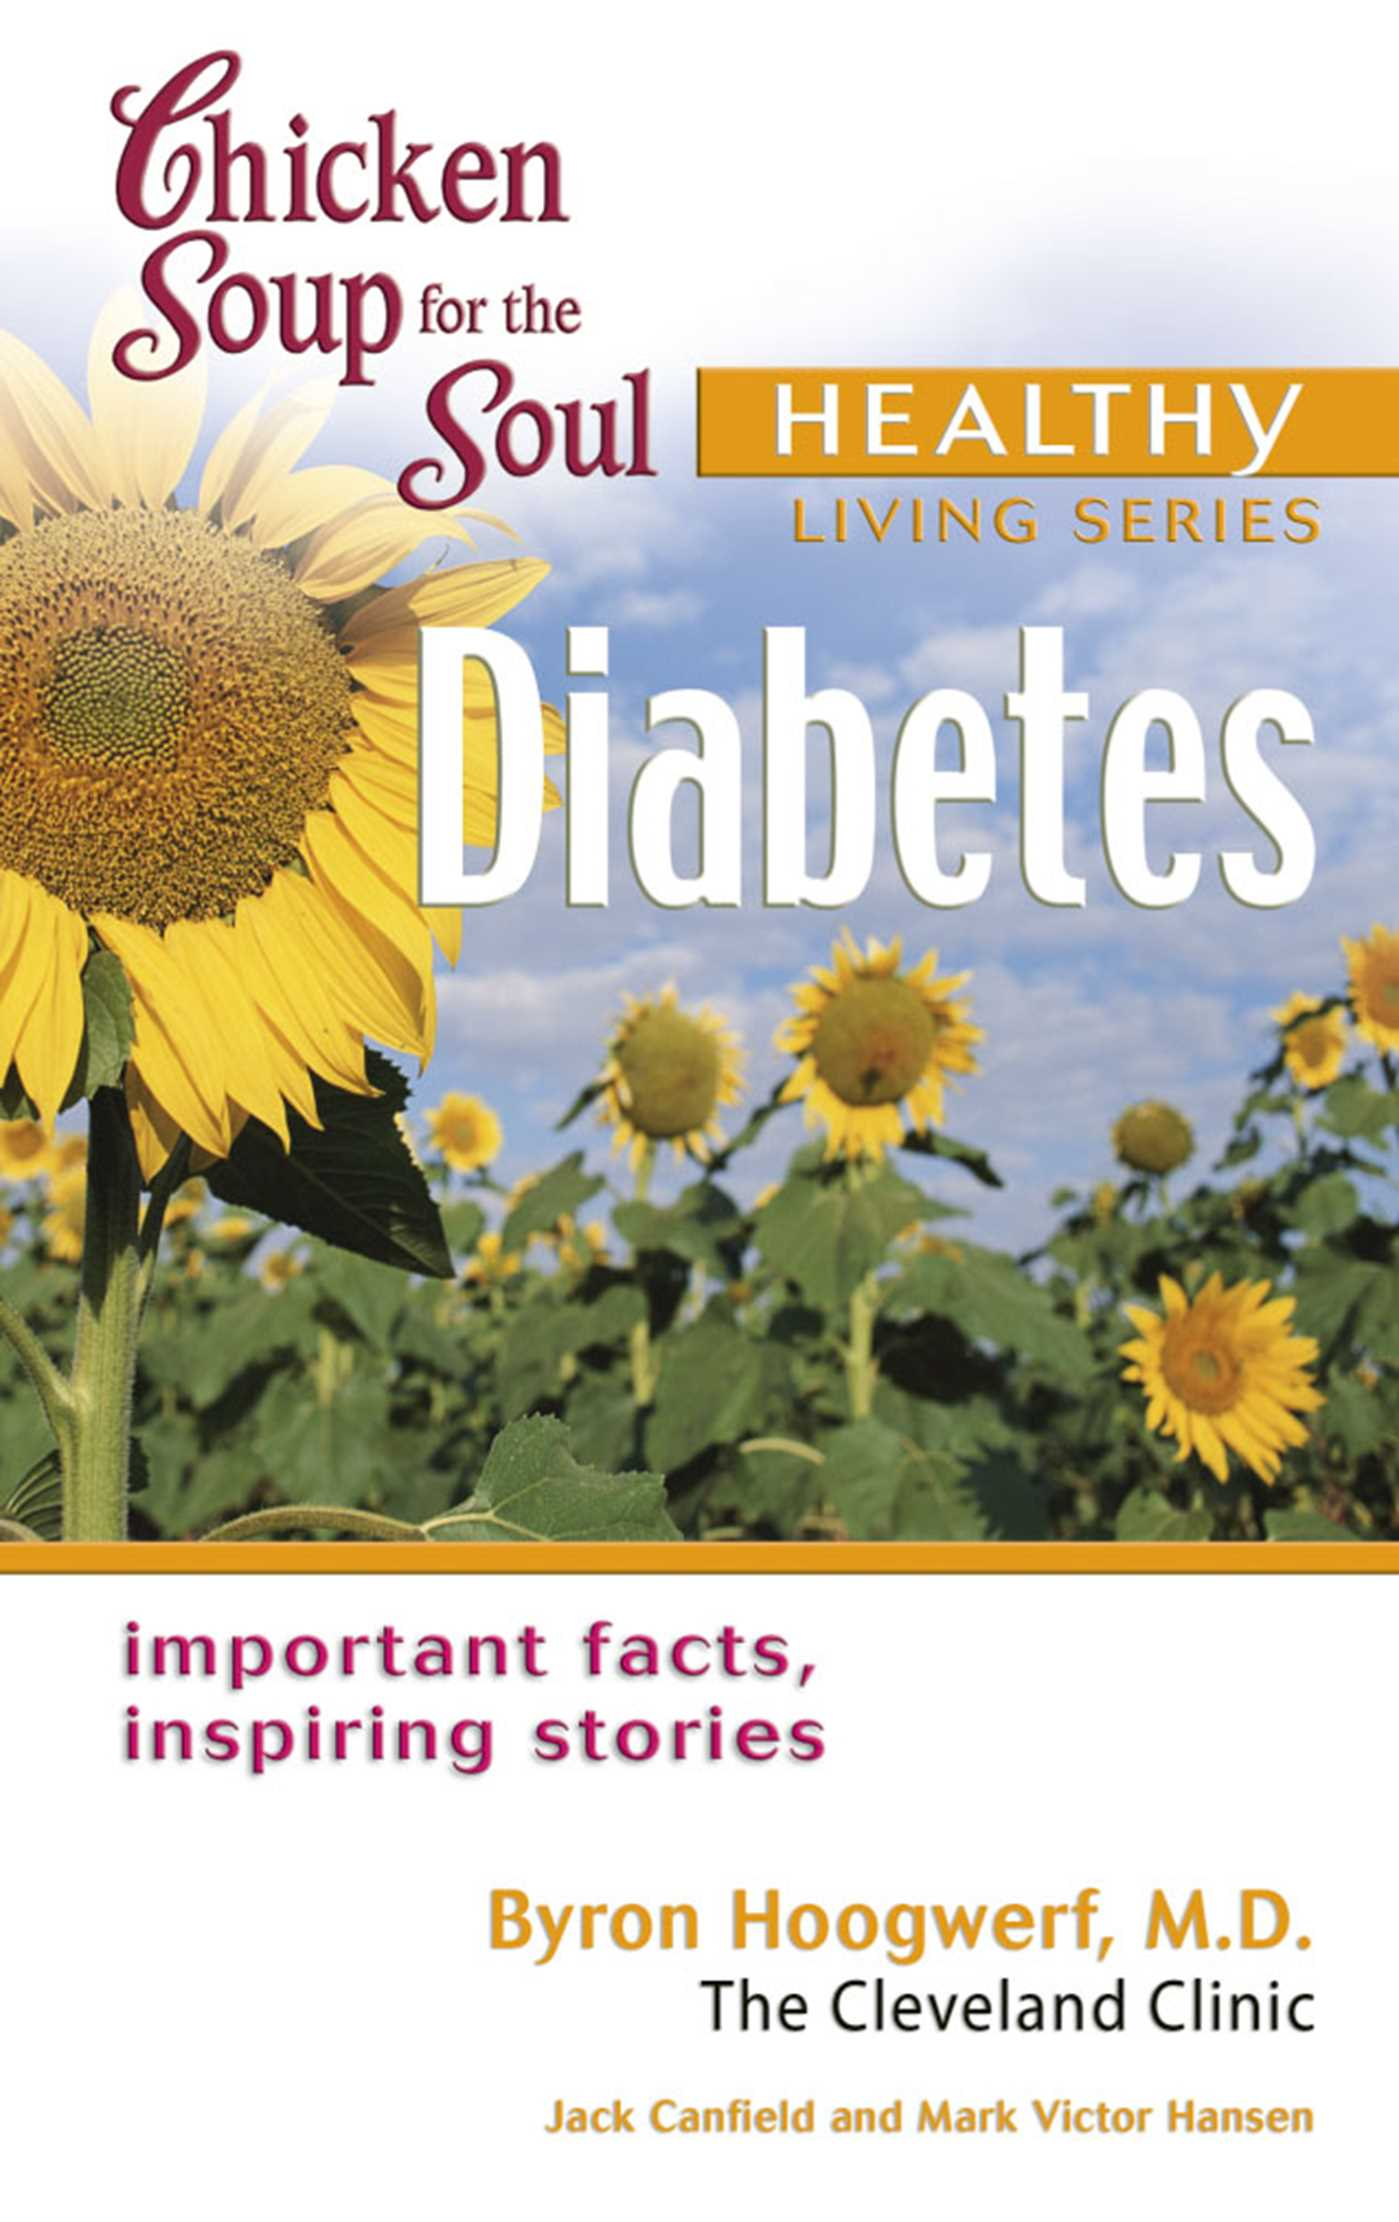 Chicken Soup for the Soul Healthy Living Series: Diabetes Important Facts, Inspiring Stories